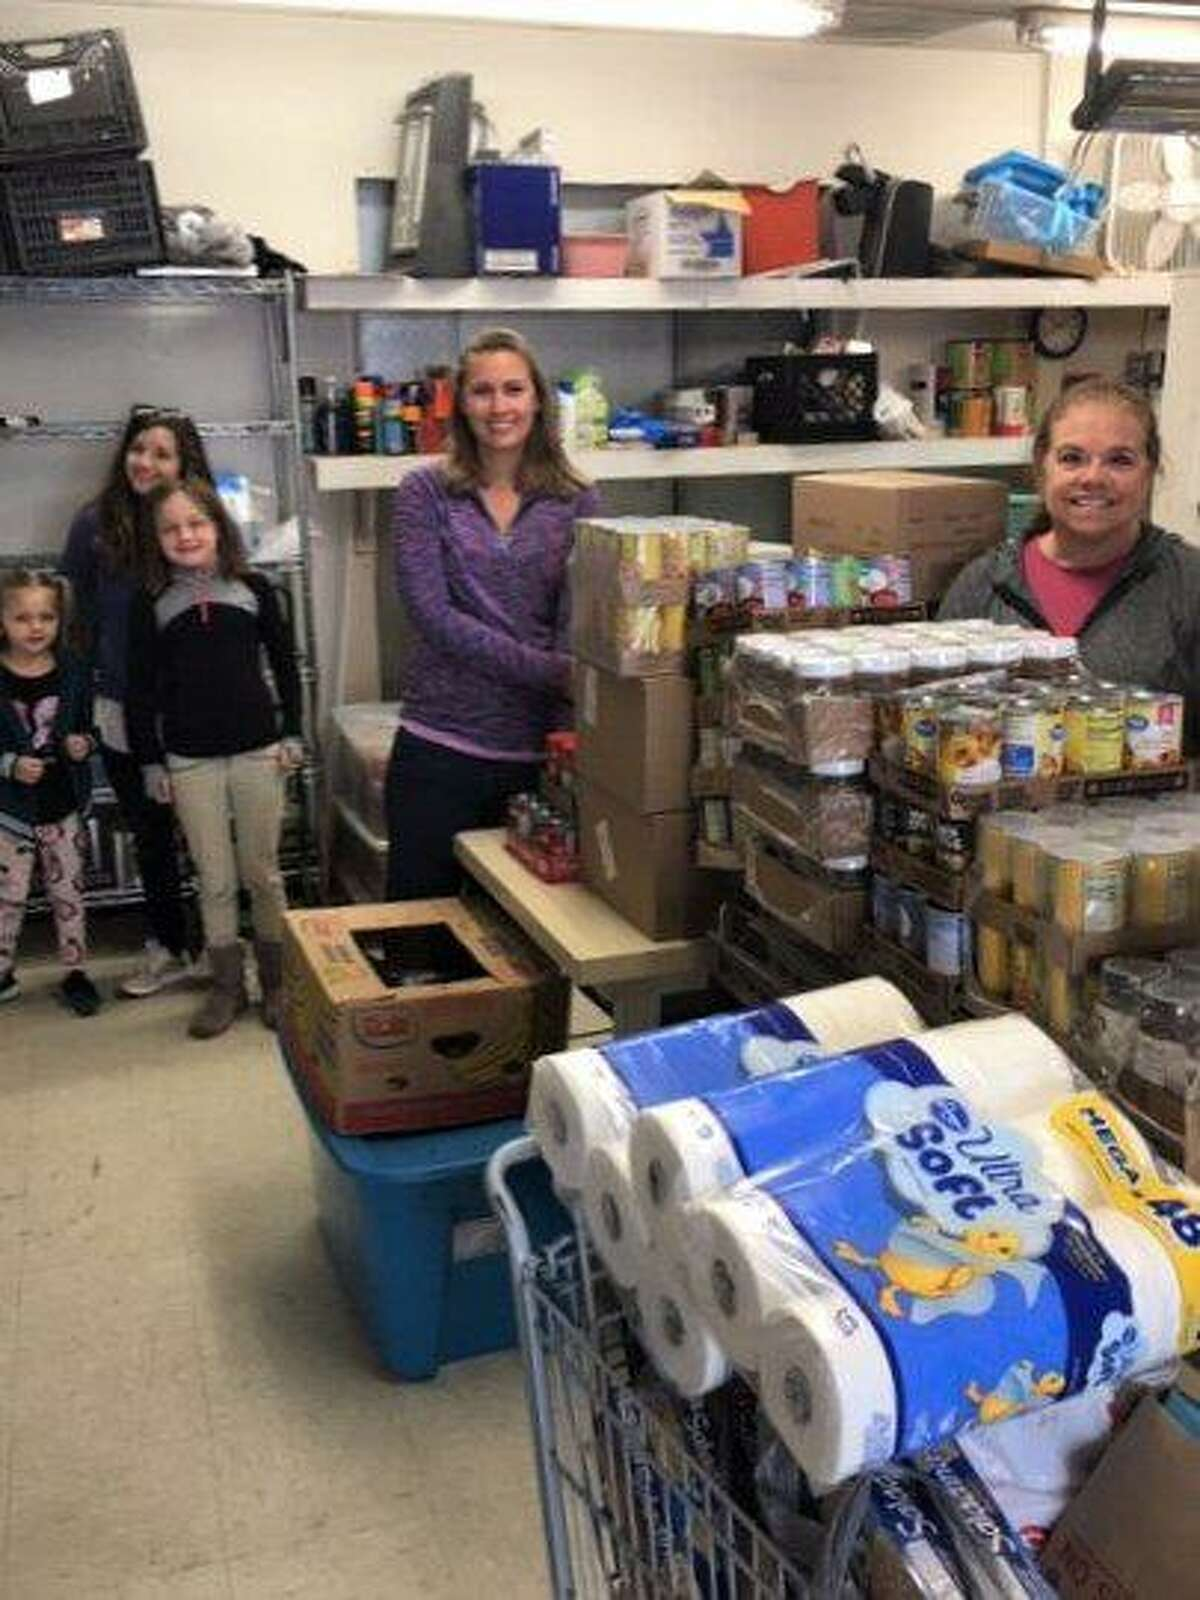 Tomball Emergency Assistance Ministries, or TEAM, has provided financial assistance and pounds of food for families since the COVID-19 pandemic has caused many to lose their jobs and sources of income.